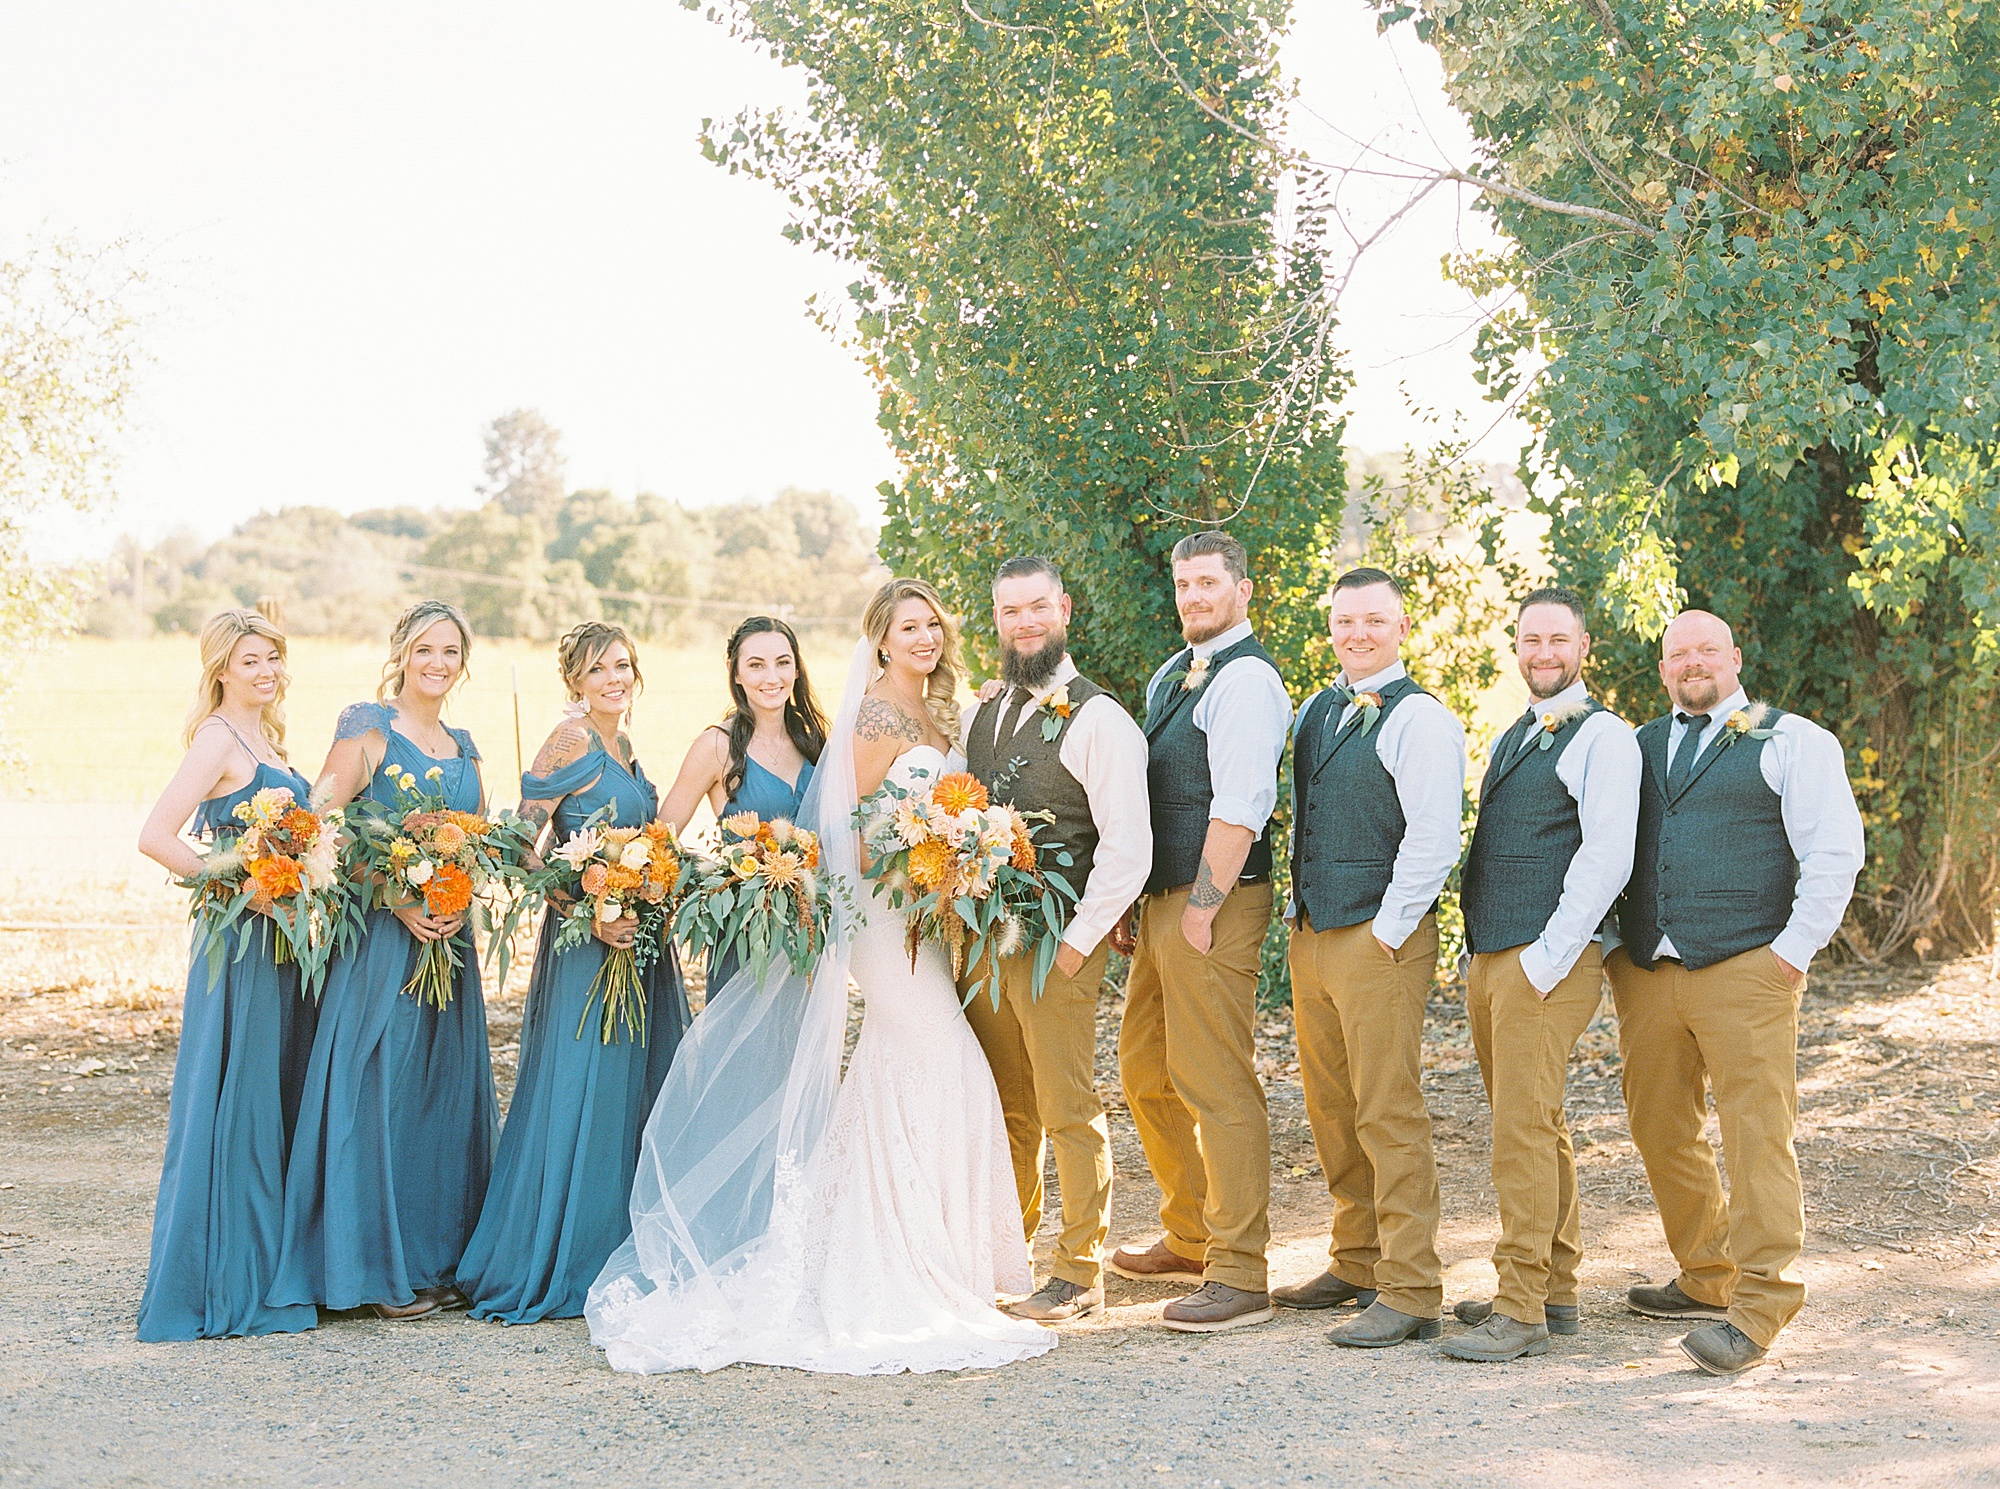 Sonora Wedding Photographer - Tiffany and Jesse - Ashley Baumgartner - Private Estate Summer Wedding_0090.jpg